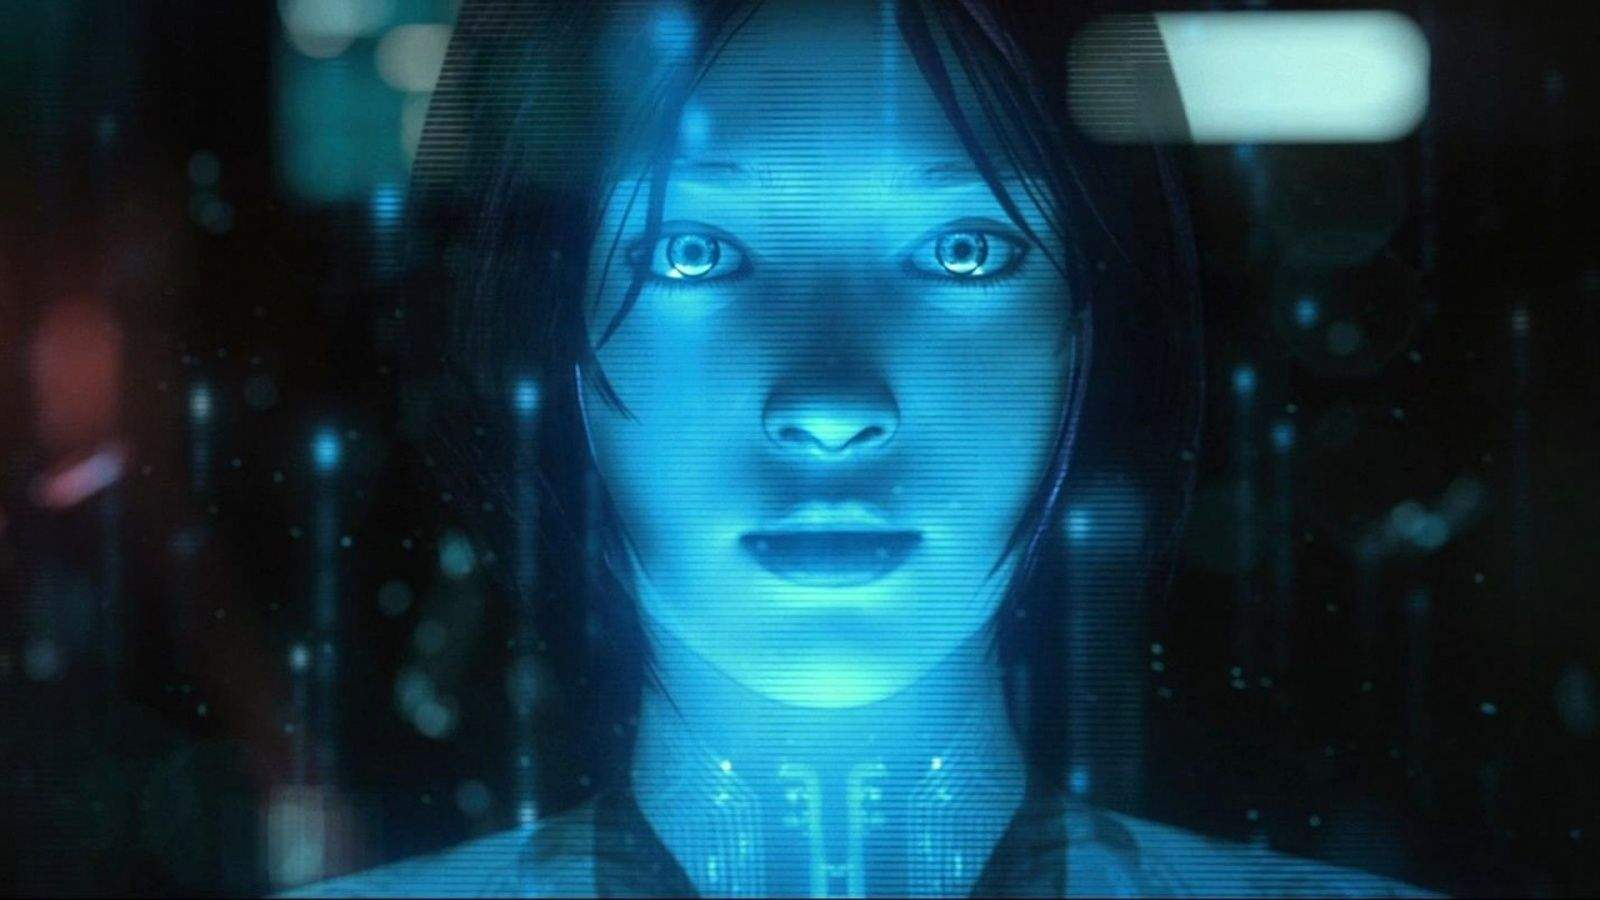 Cortana was named after a character from Halo 4